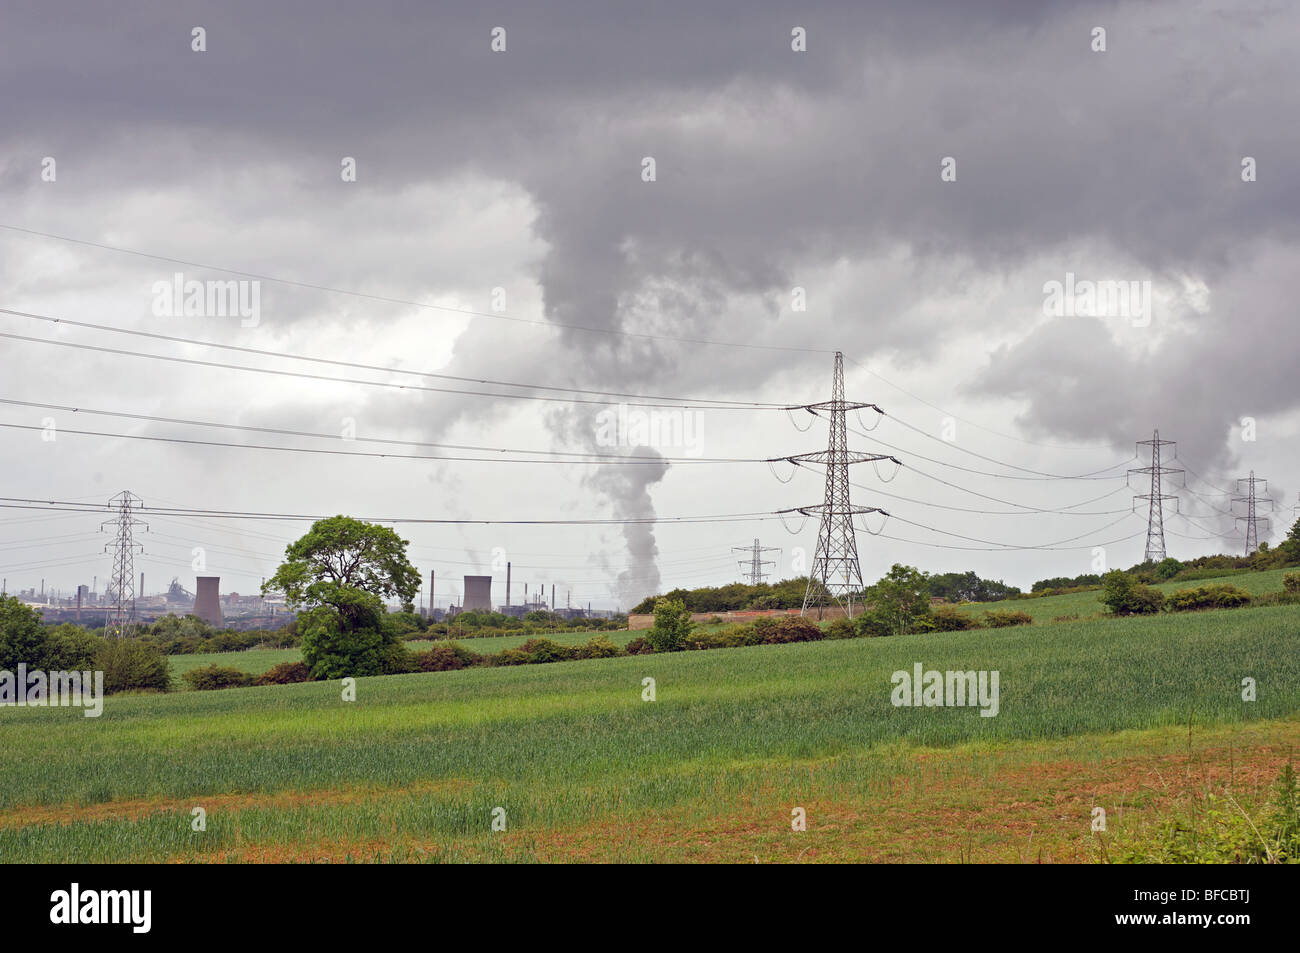 Smoke rising up from heavy industry, Middlesbrough, Cleveland, North East England. - Stock Image